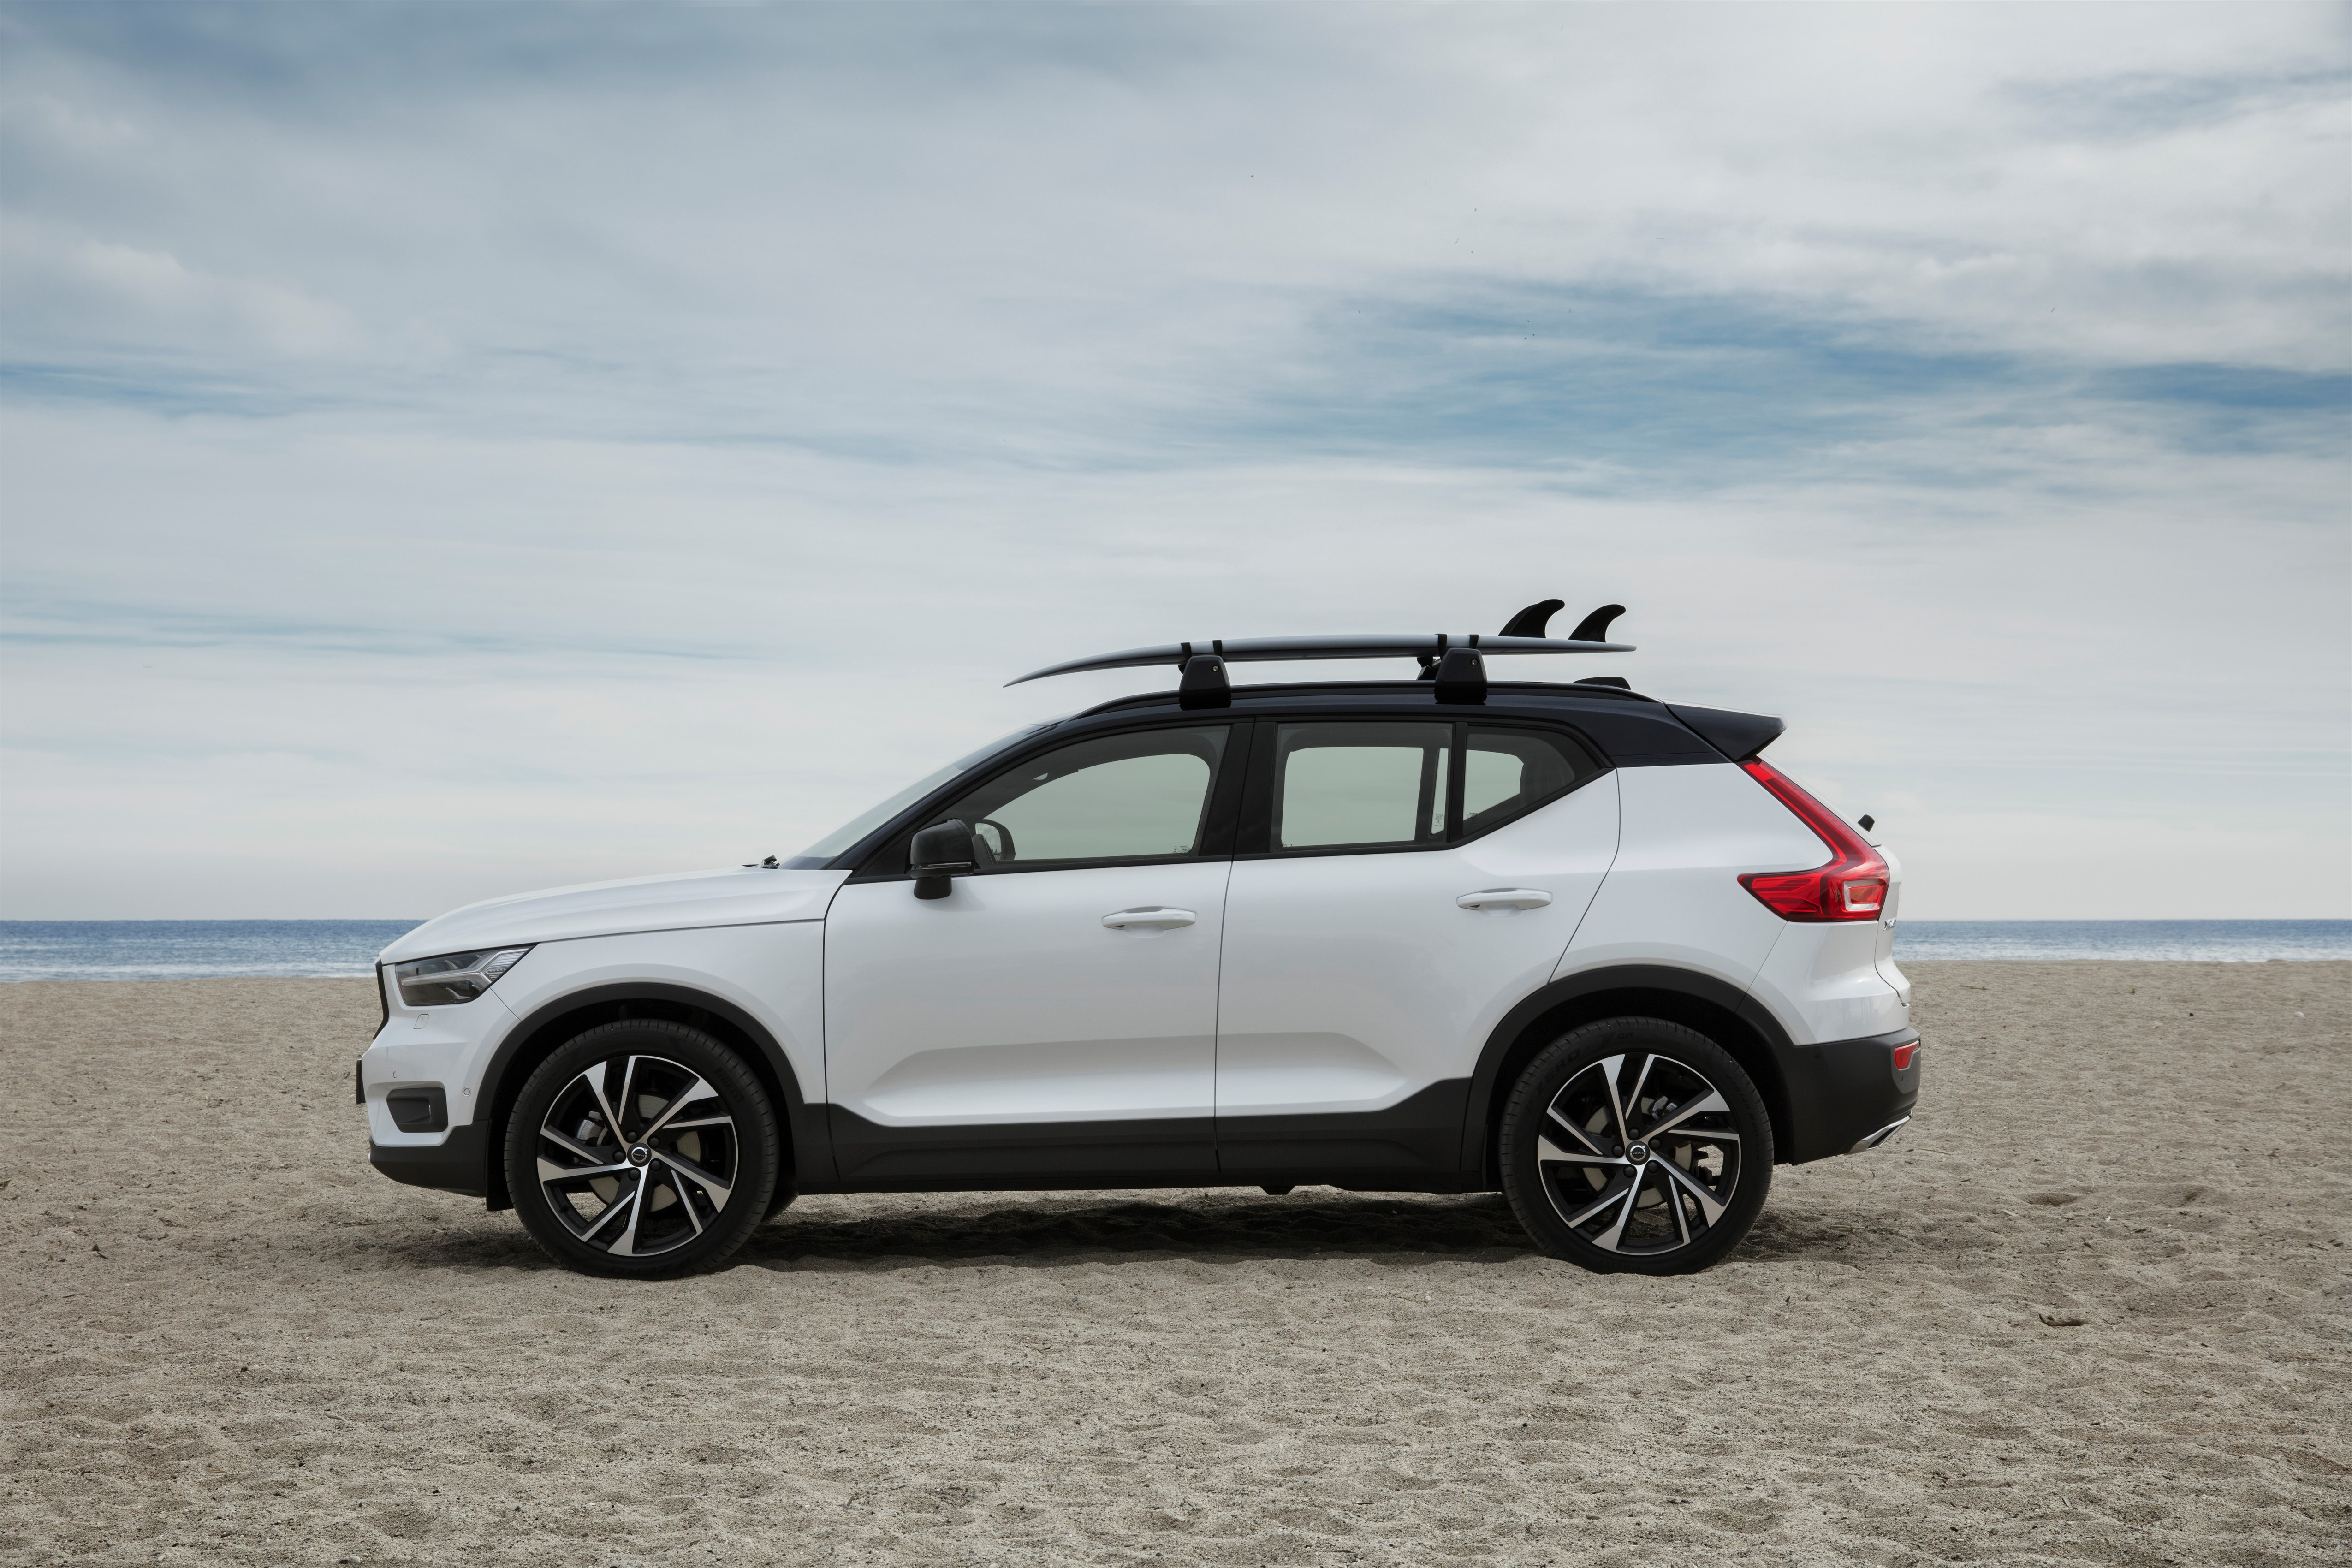 New Volvo XC40 R-Design T5 Crystal White with black roof on location in Barcelona, HAV surfboards